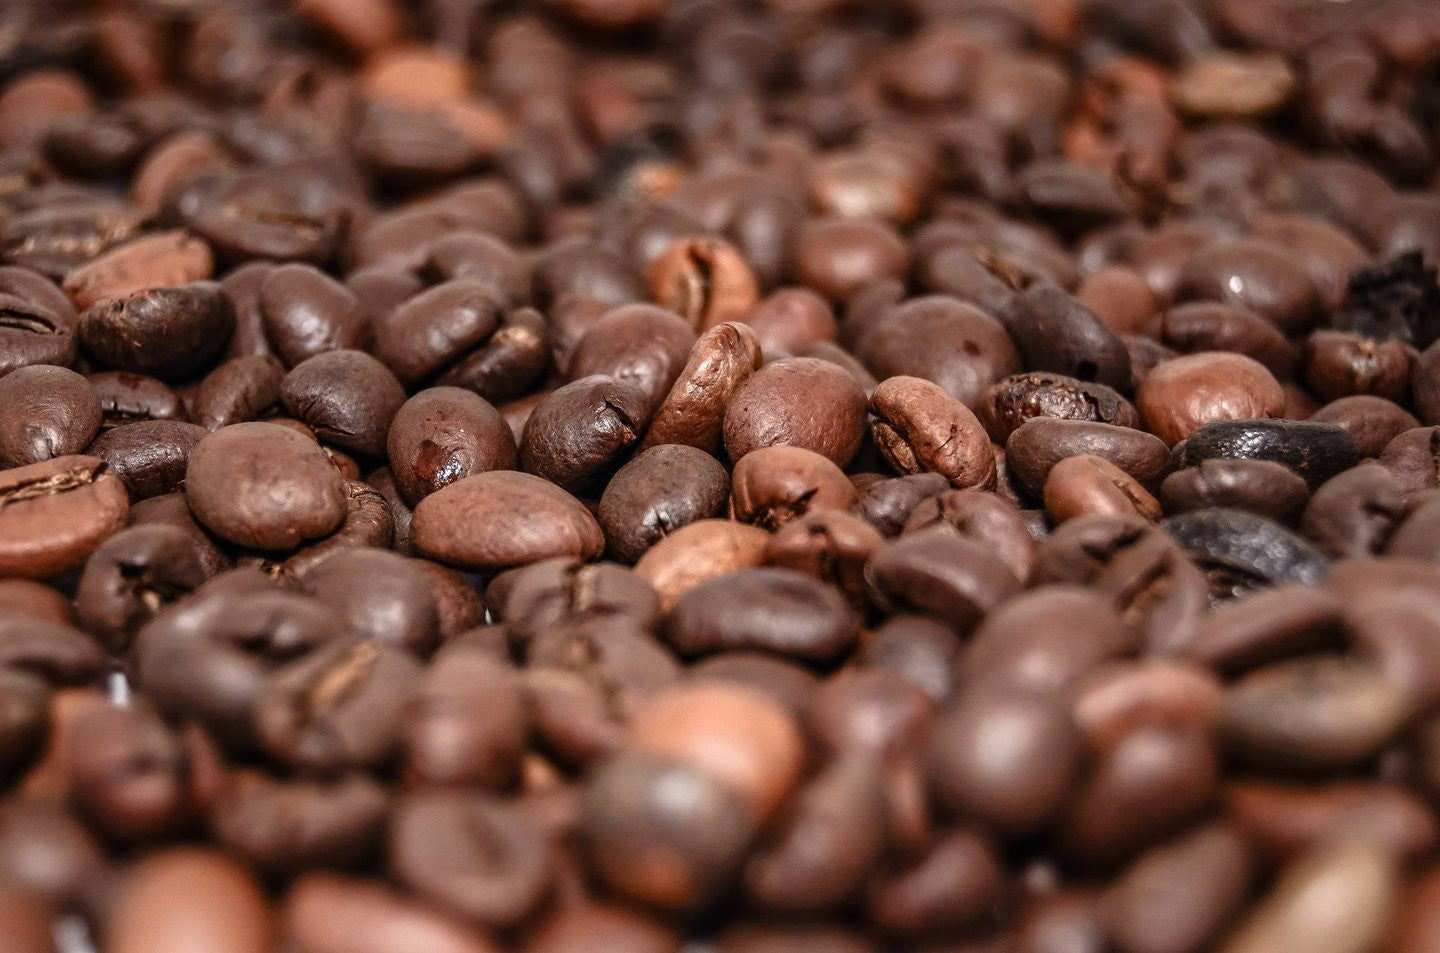 Coffee storage - Our top tips for keeping your beans fresh!